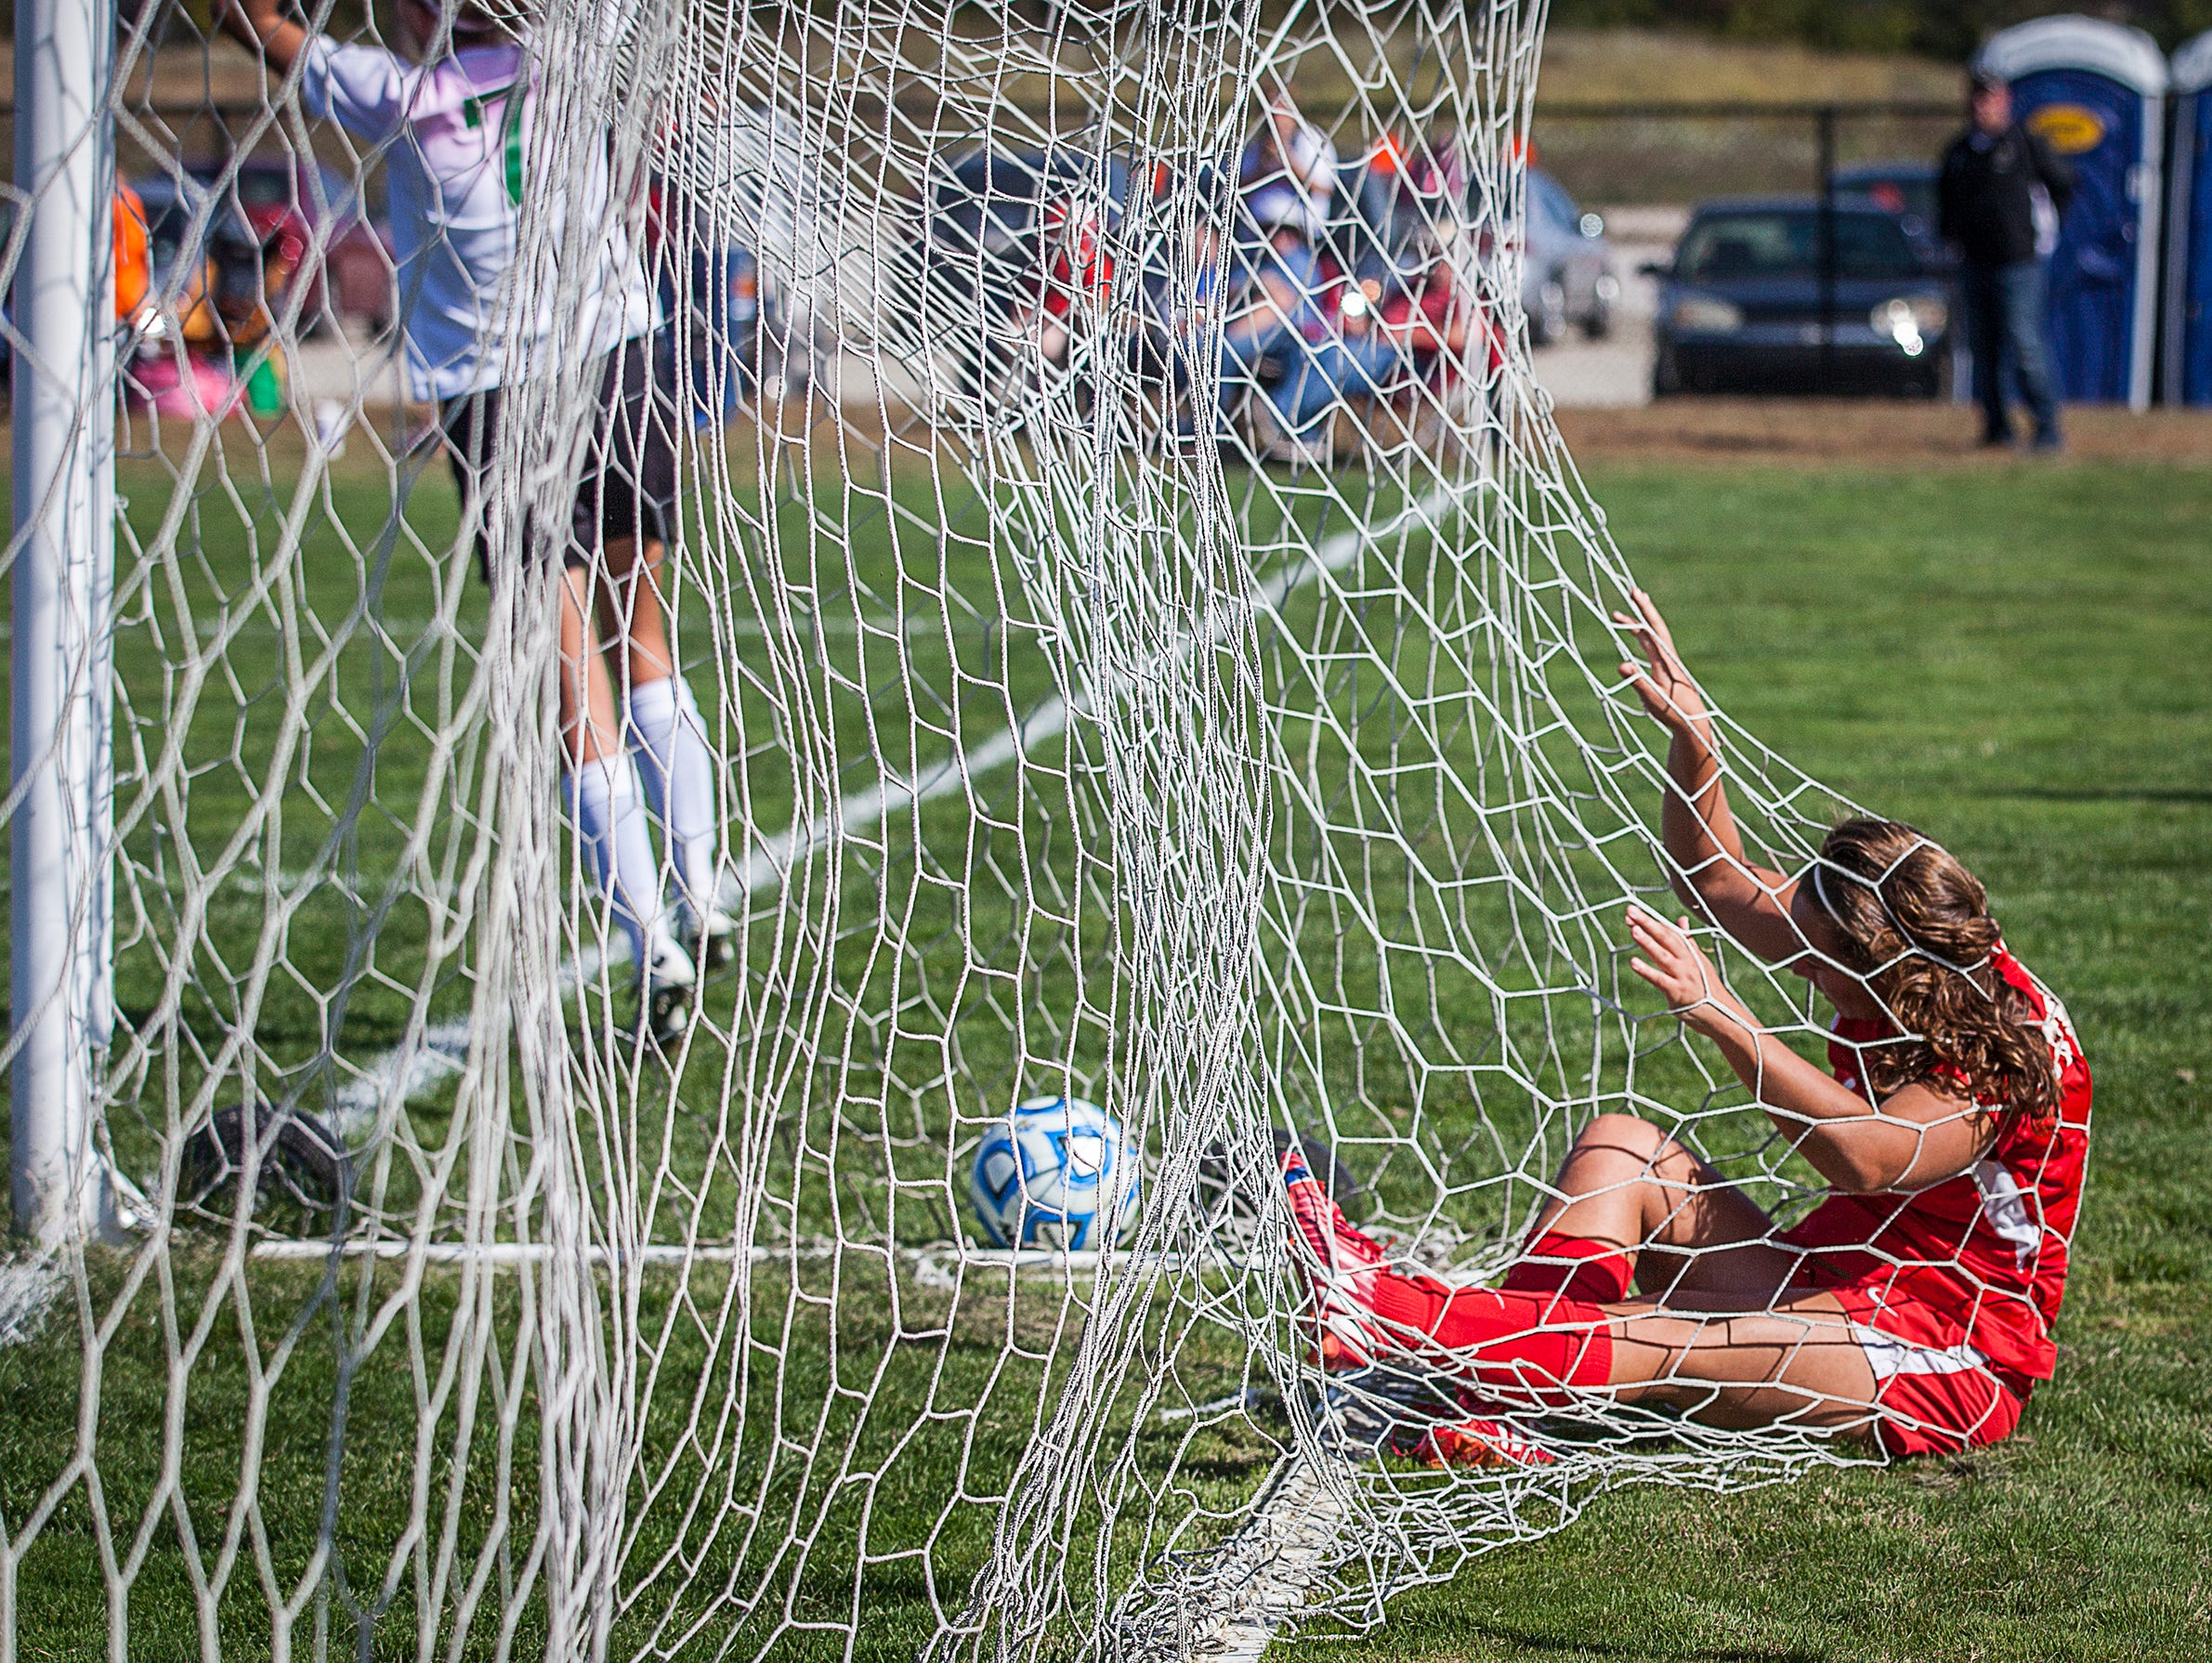 Jay County's Emily Muhlenkamp falls into the net after attempting to stop a goal made by Yorktown during their game at the Yorktown Sports Park on Saturday, Oct. 10, 2015.